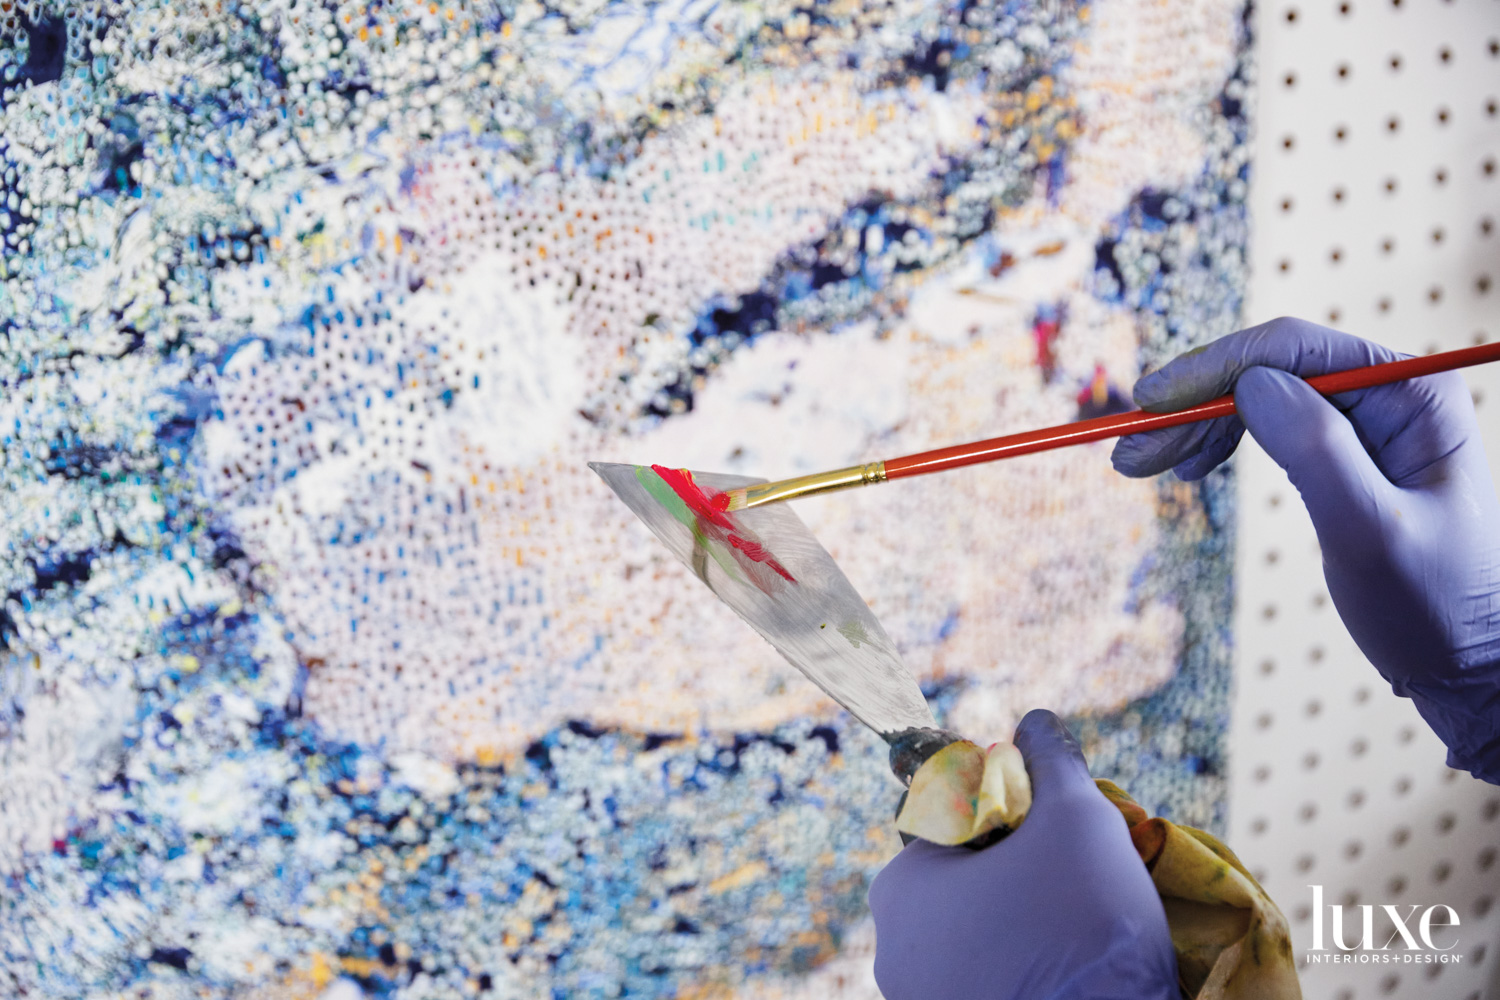 A paint brush picks up red paint from a palette knife